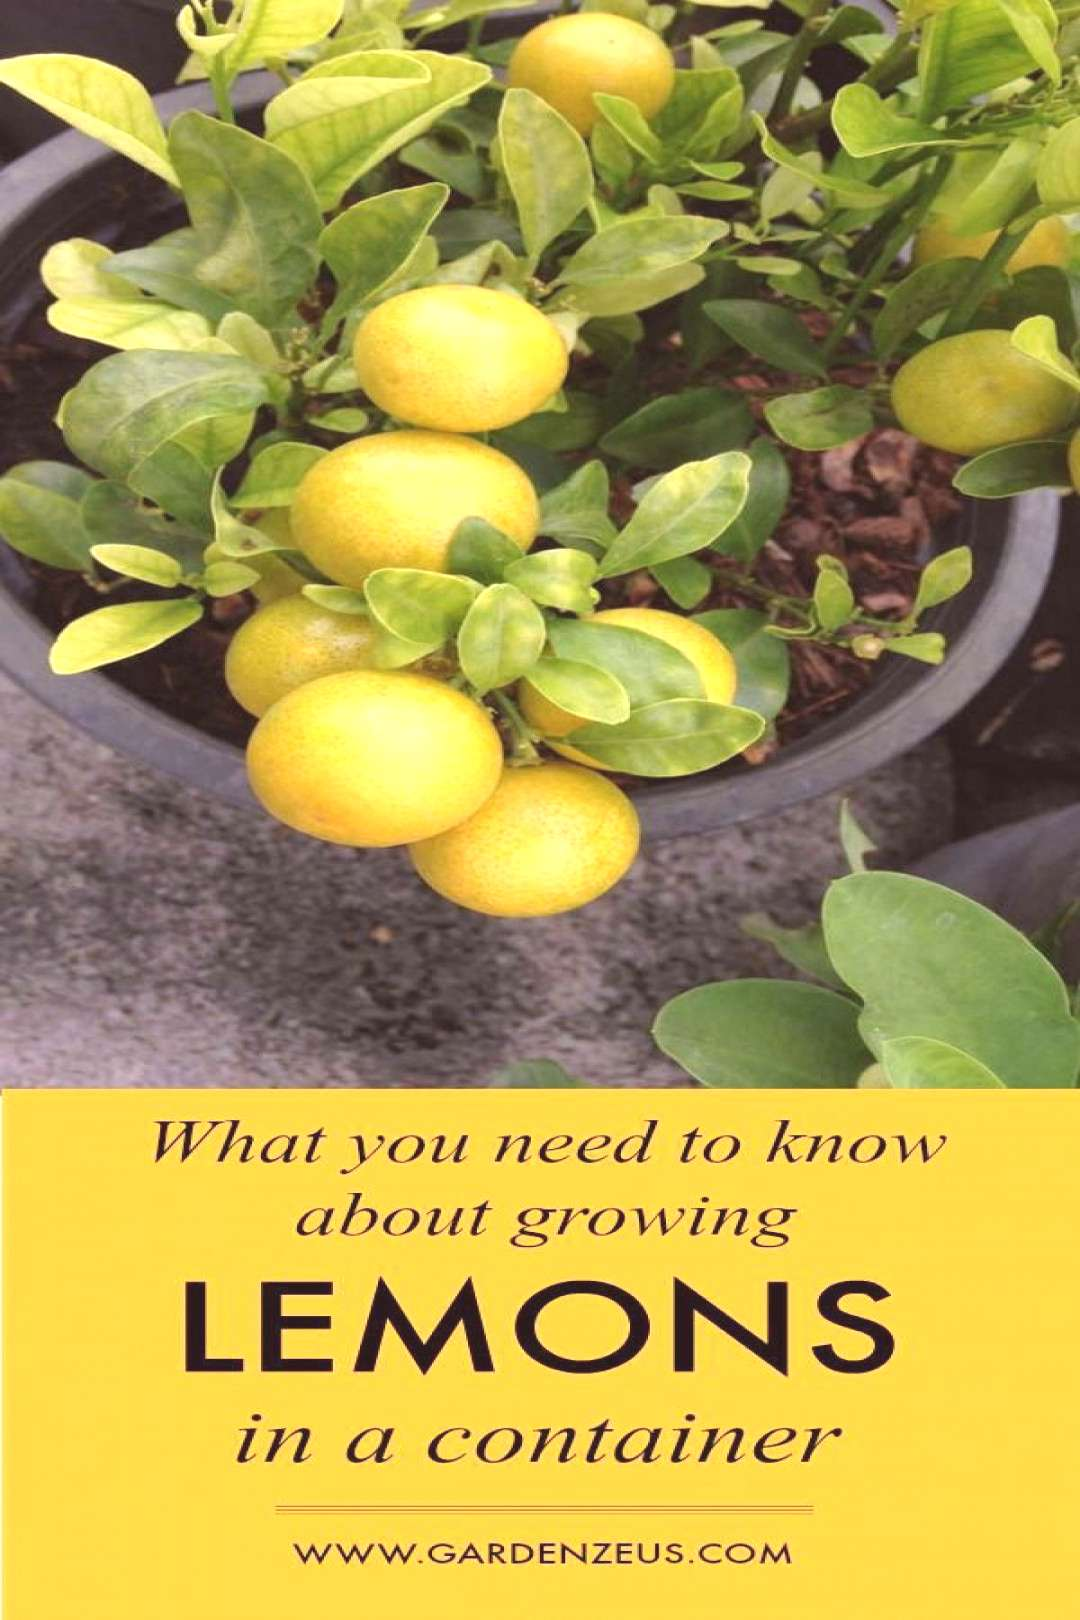 What you need to know about growing lemons in a container